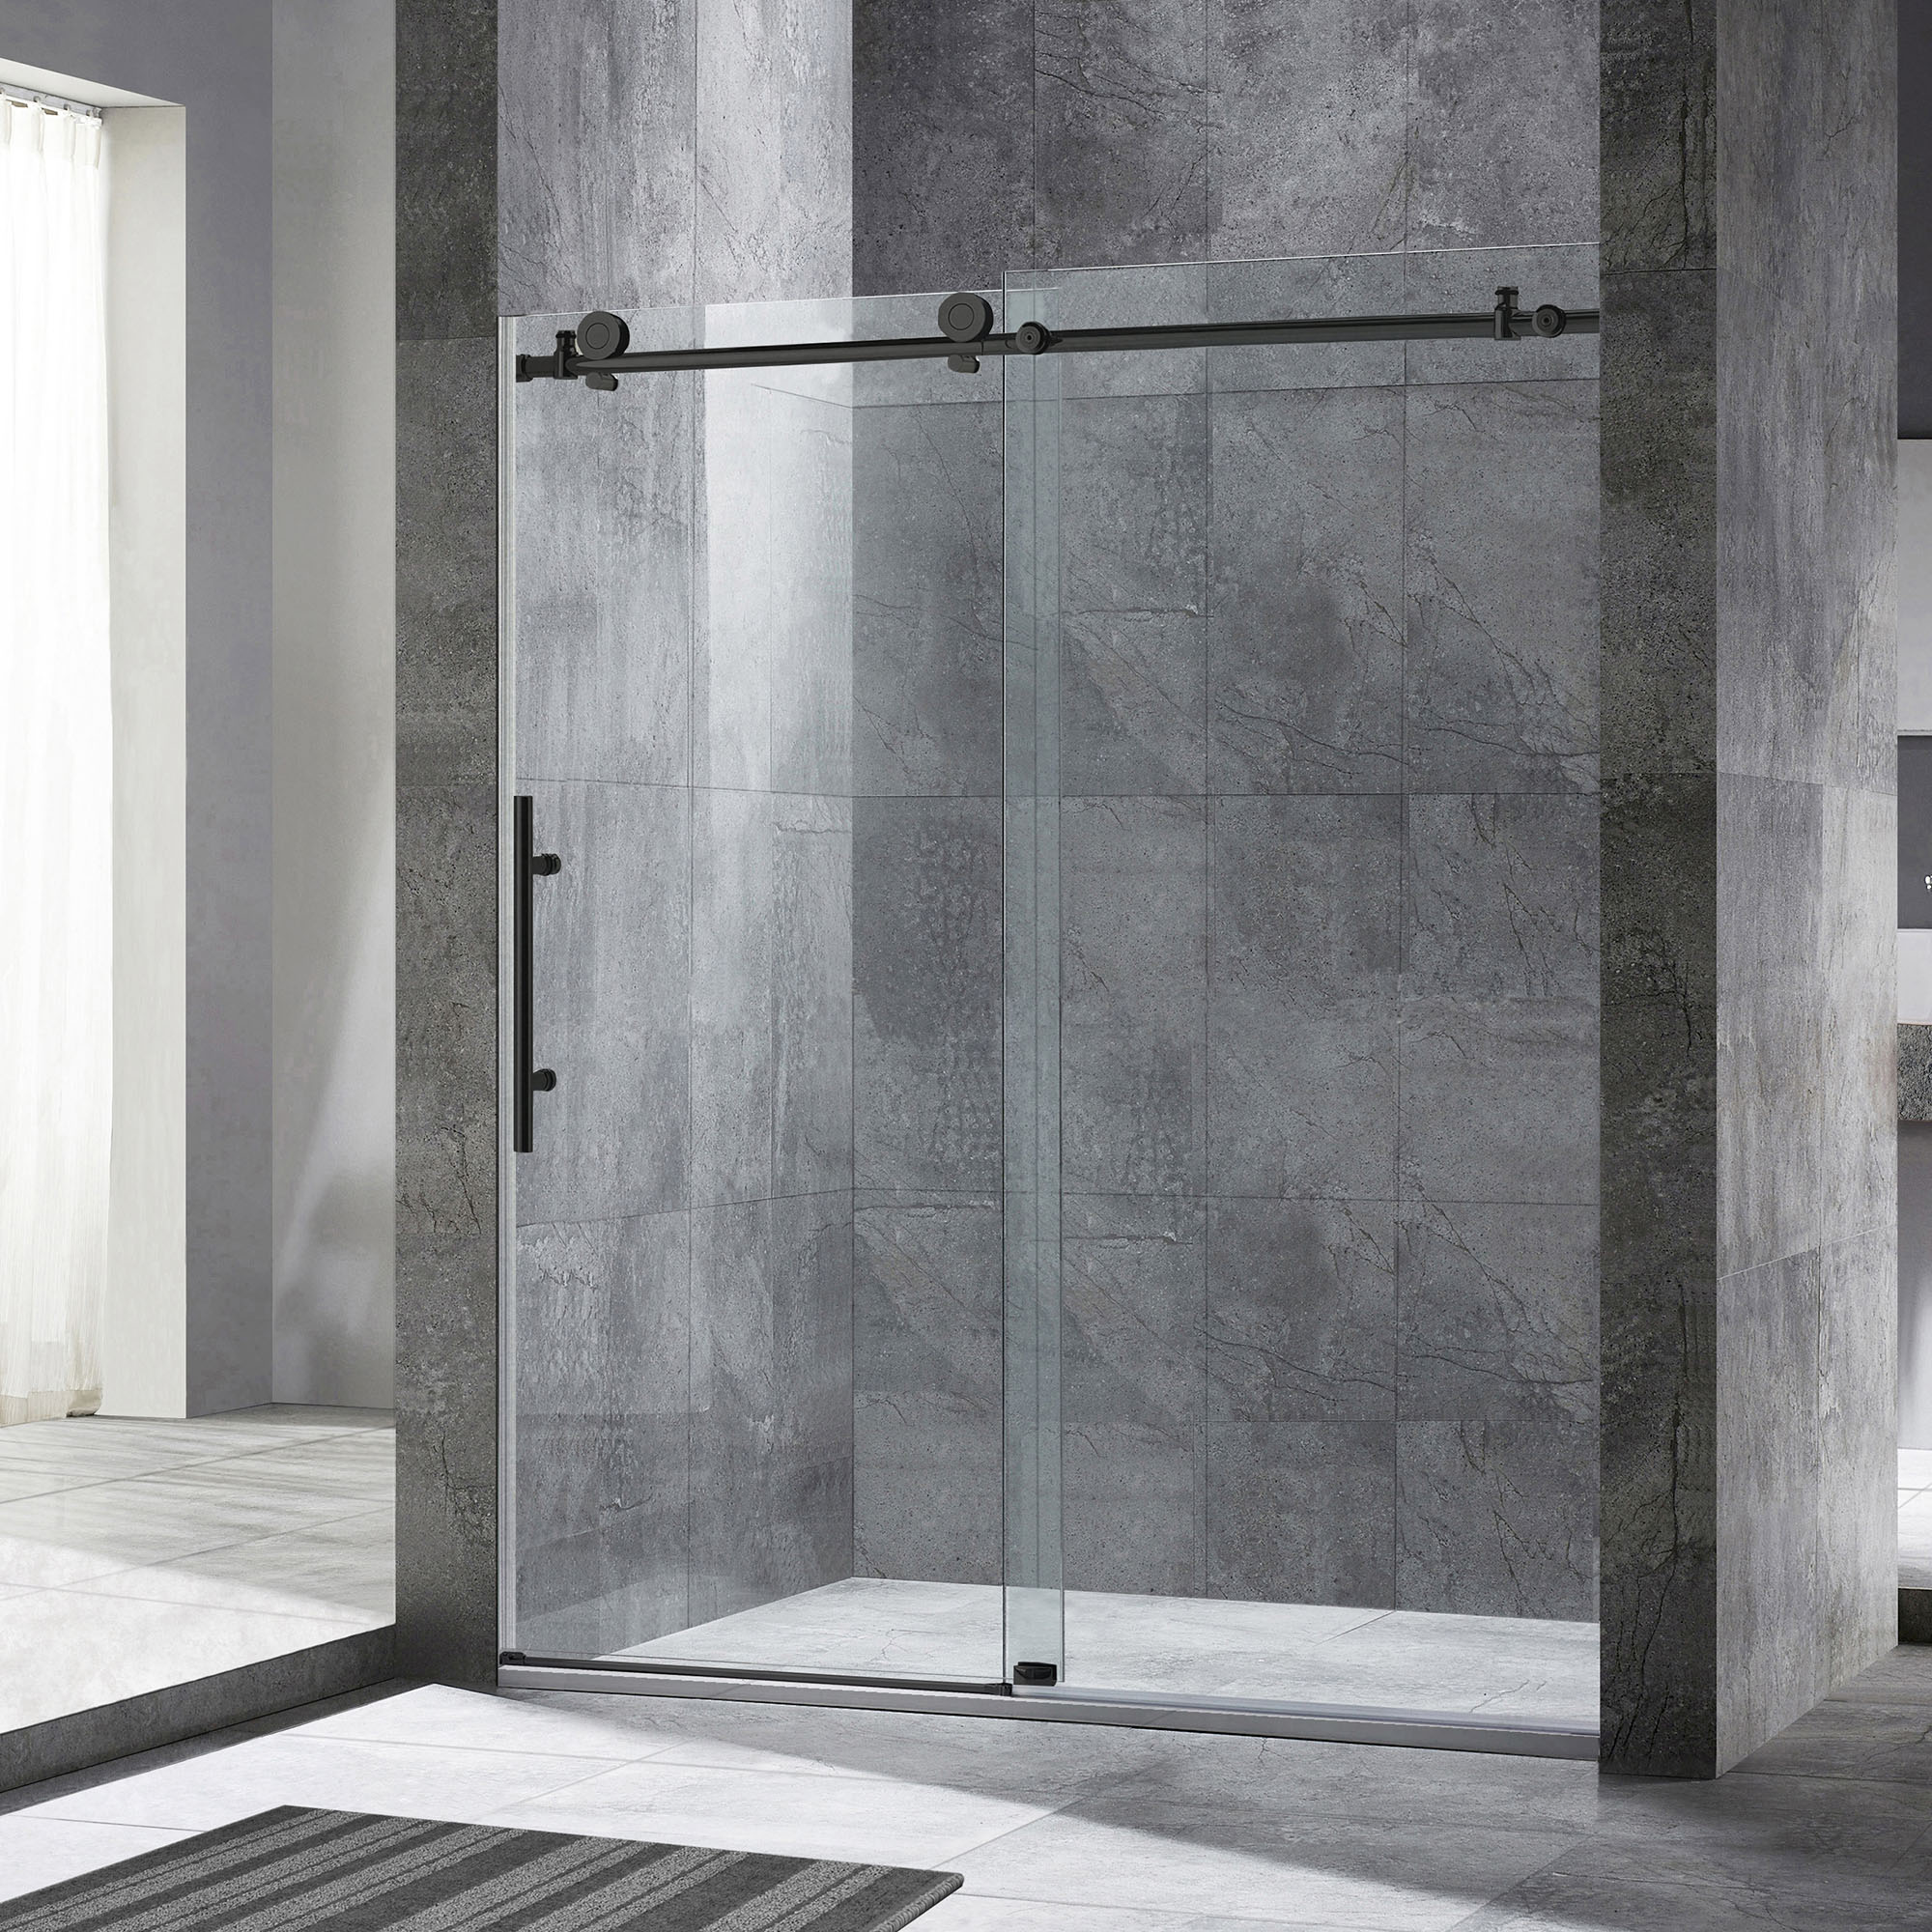 "WOODBRIDGE Frameless Sliding Shower, 56""-60"" Width, 76"" Height, 3/8"" (10 mm) Clear Tempered Glass, Black Finish, Designed for Smooth Door Closing. MBSDC6076-MBL, 60""x 76"" Matte Black"